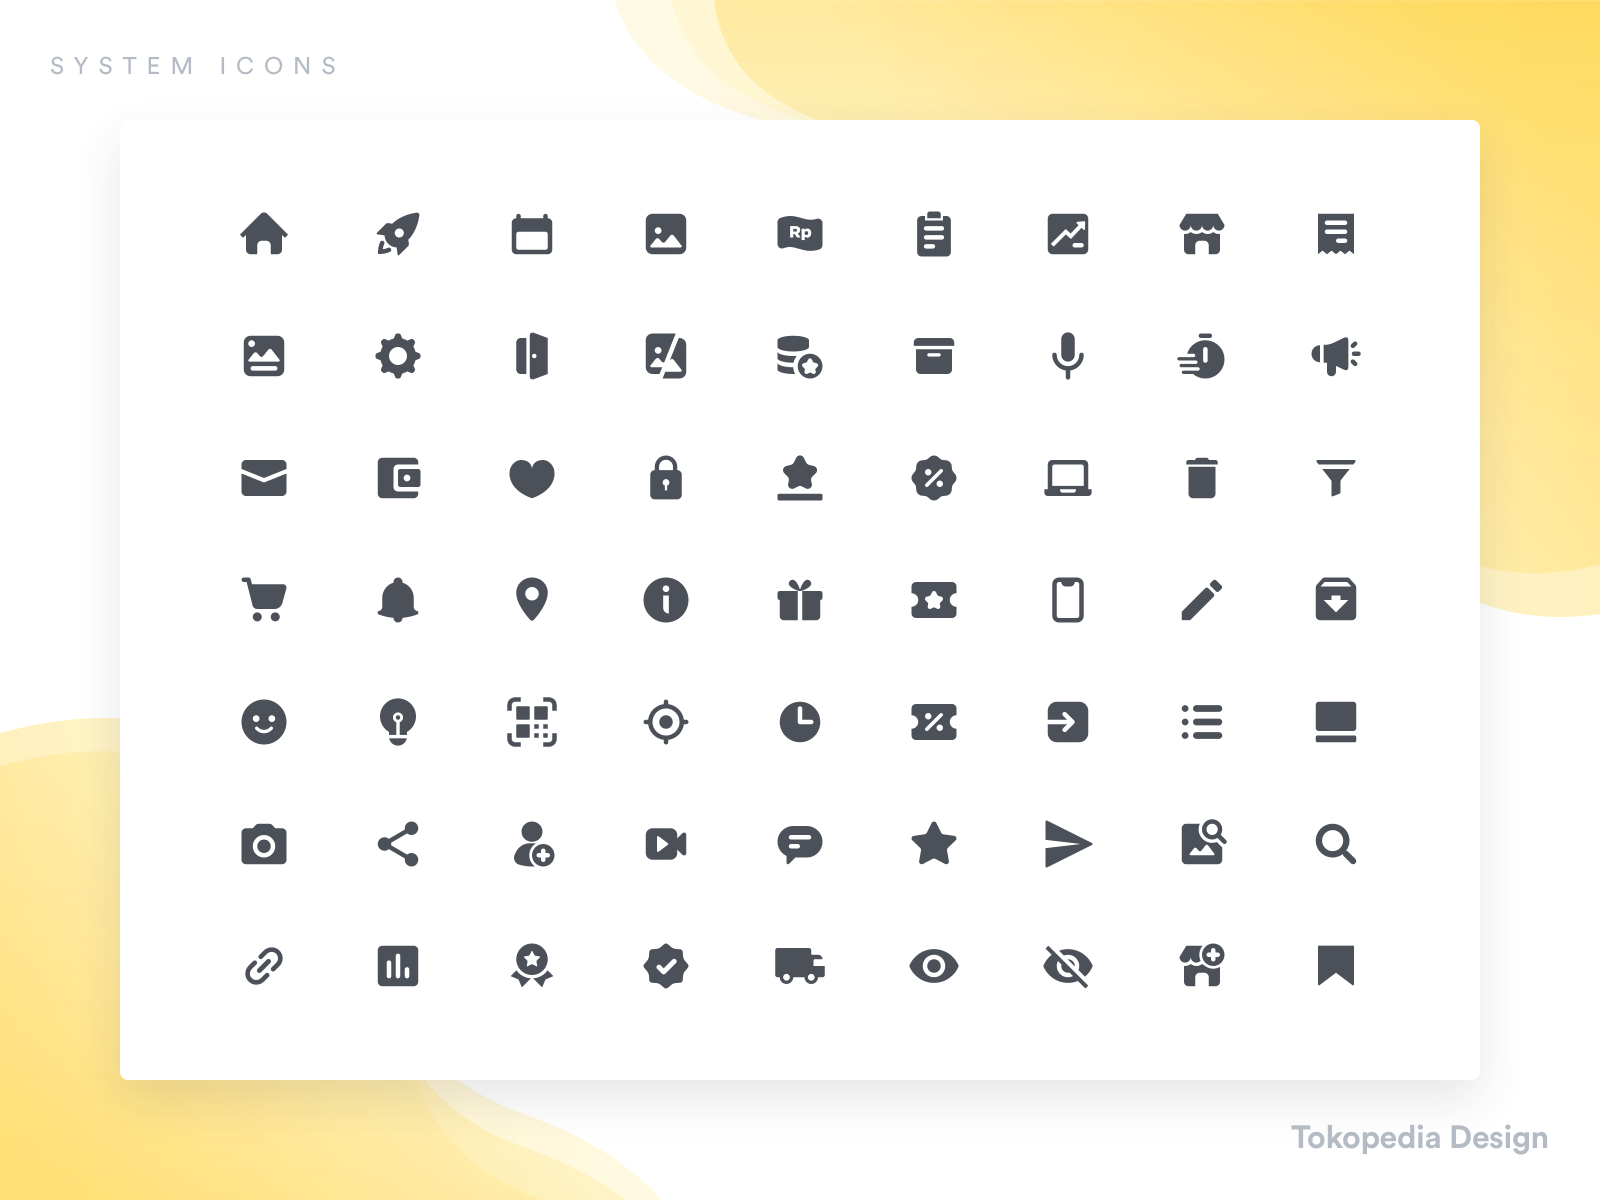 dribbble tokopedia design system icons png by ignatius gregory dribbble